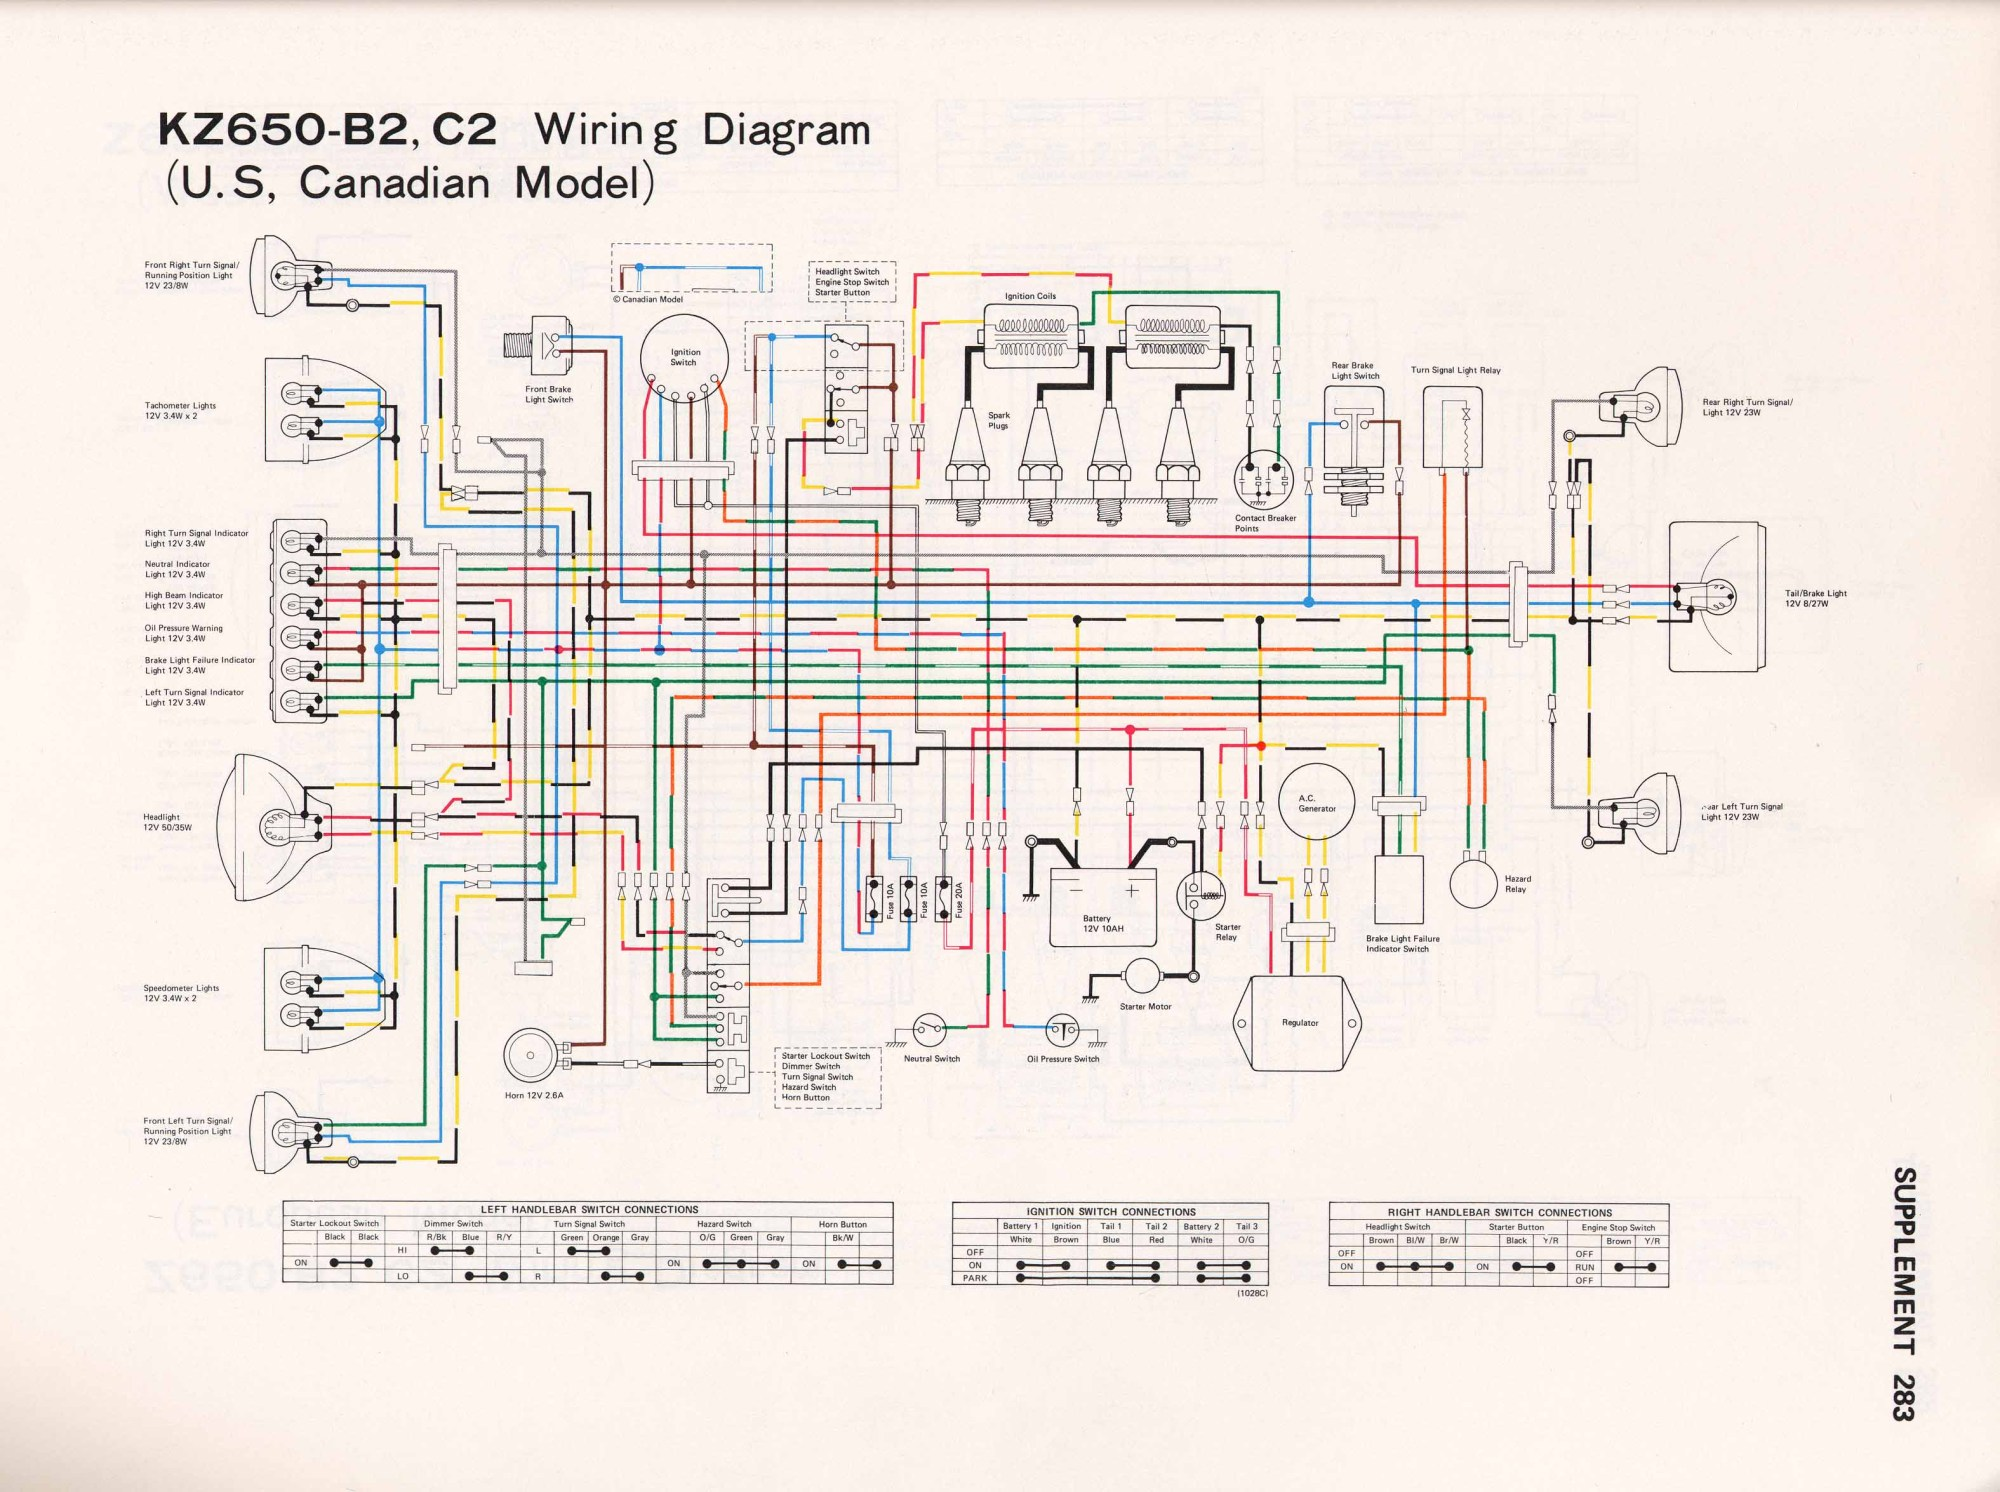 hight resolution of 1982 kz650 wiring diagram wiring diagram paper78 kz650 wiring diagram wiring diagram paper 1982 kz650 wiring